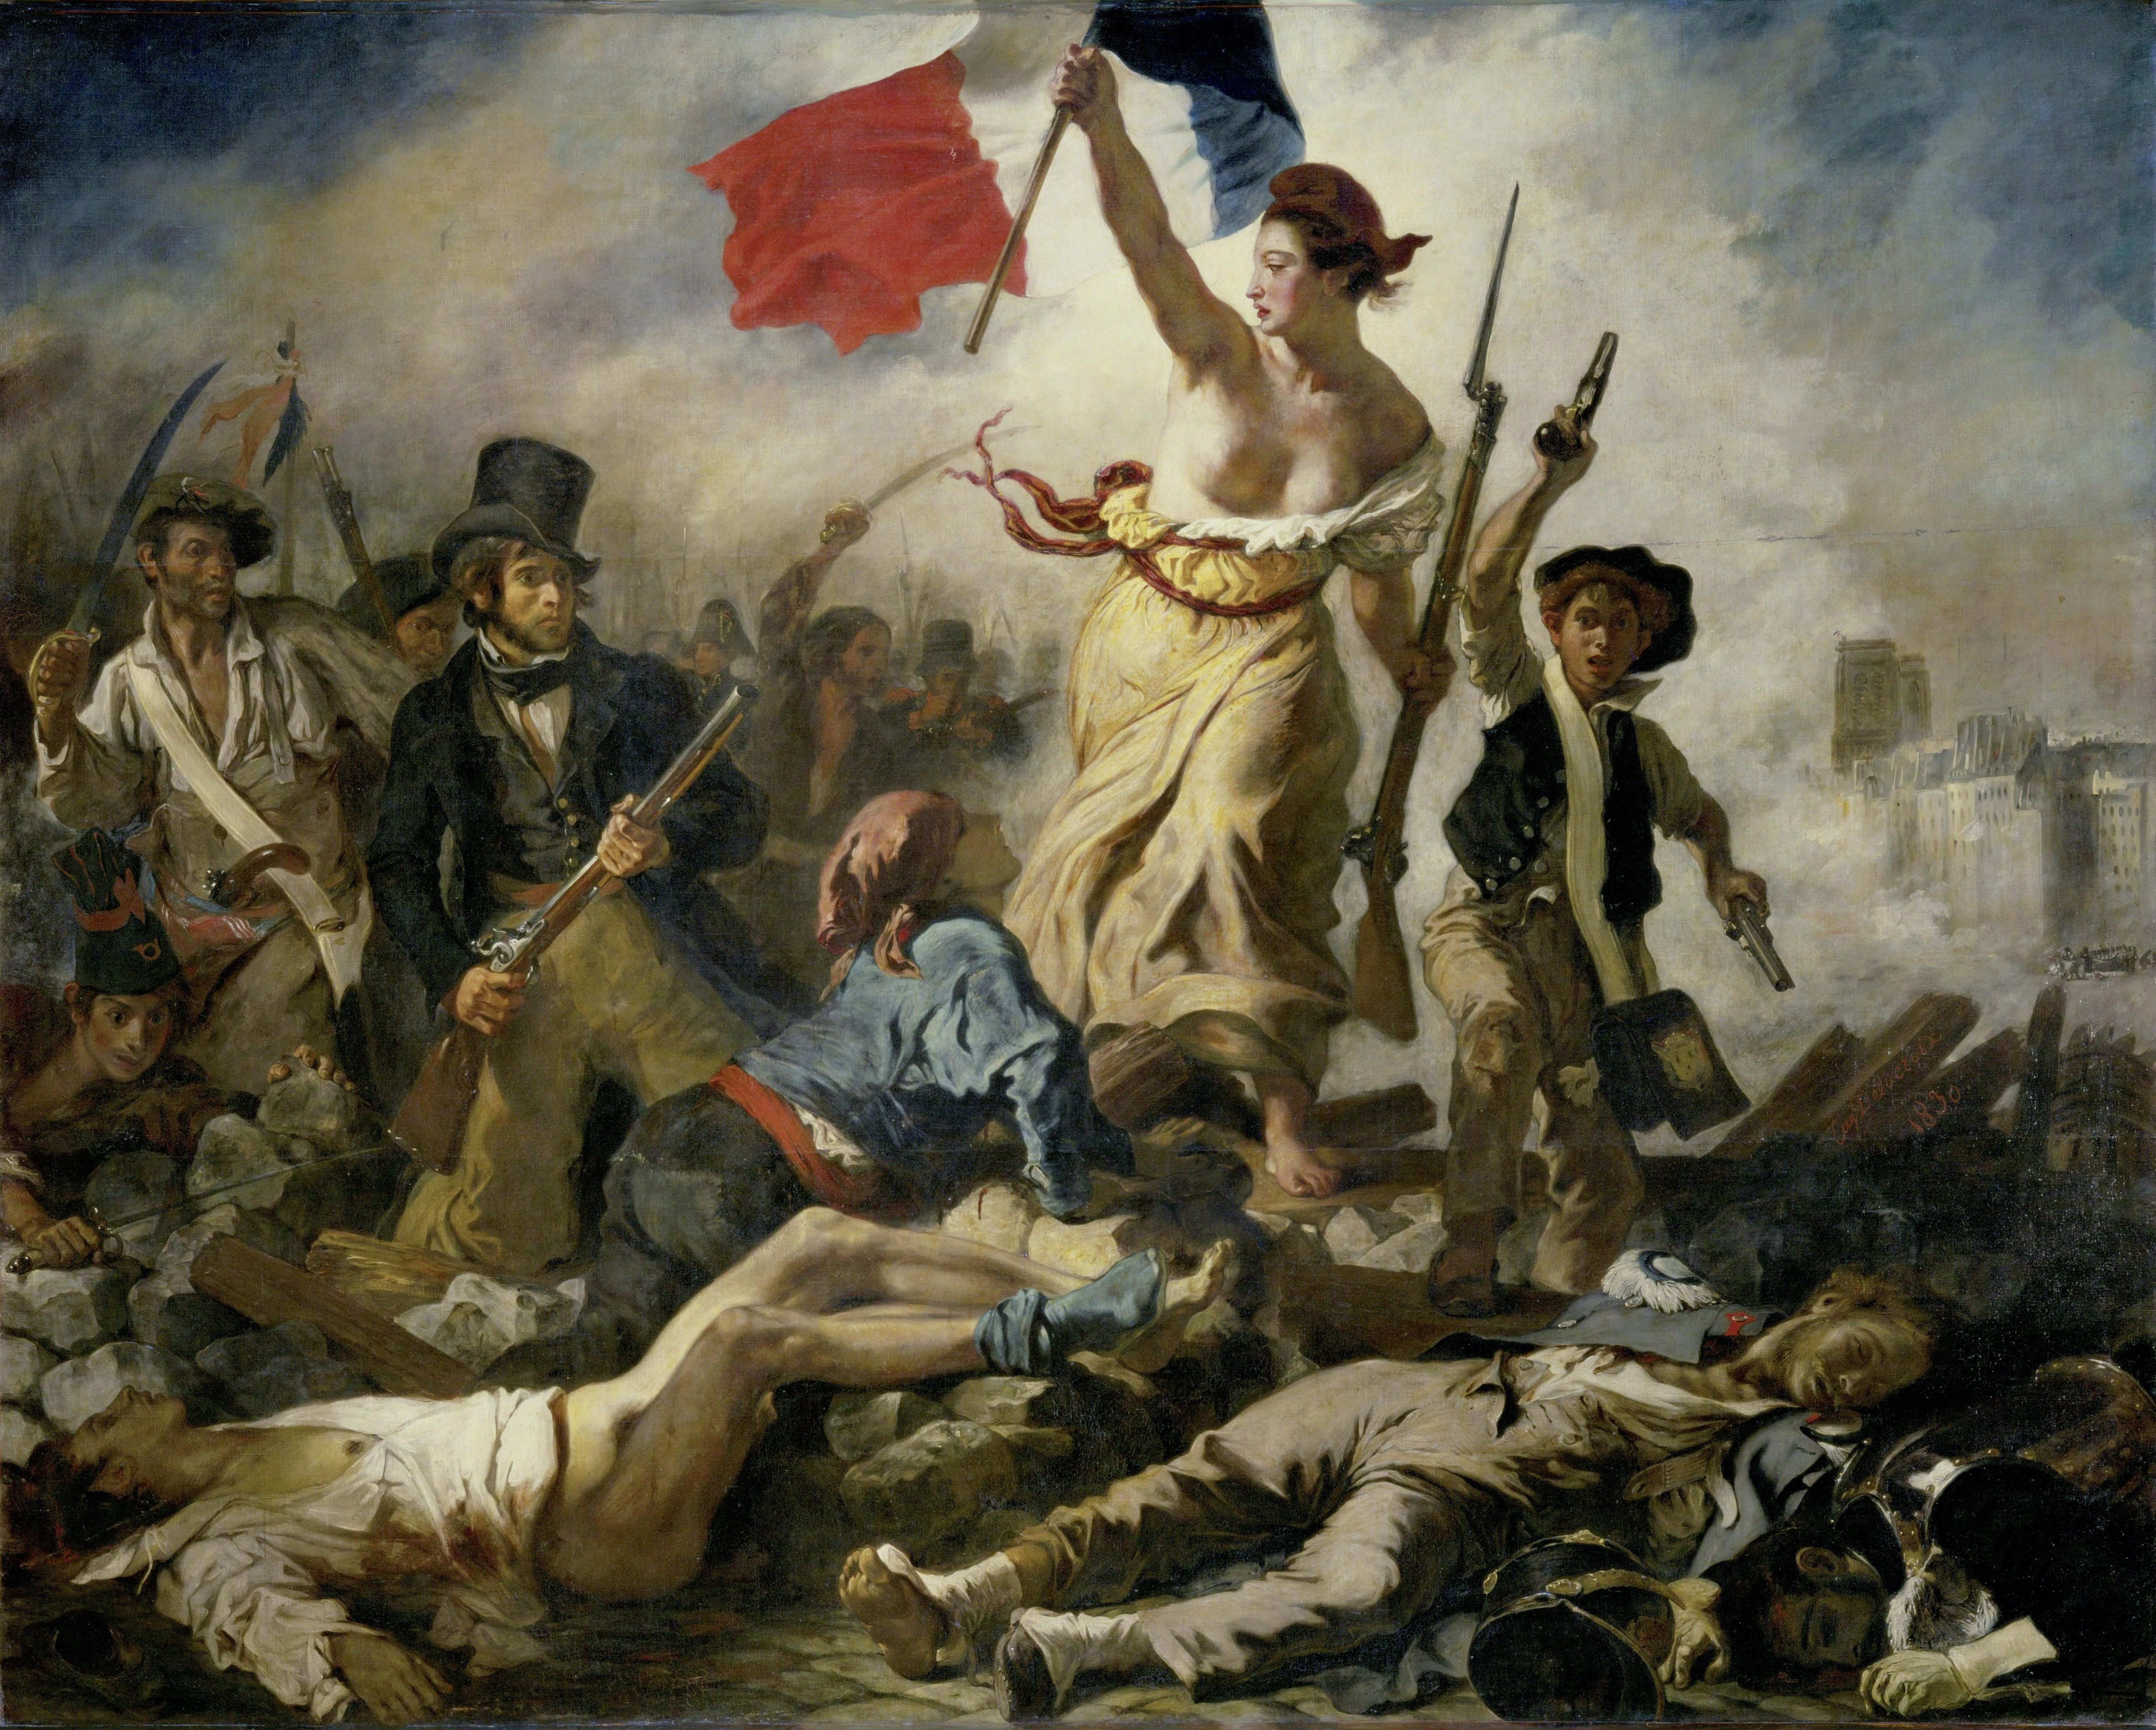 olympe de gouges and the rights of woman